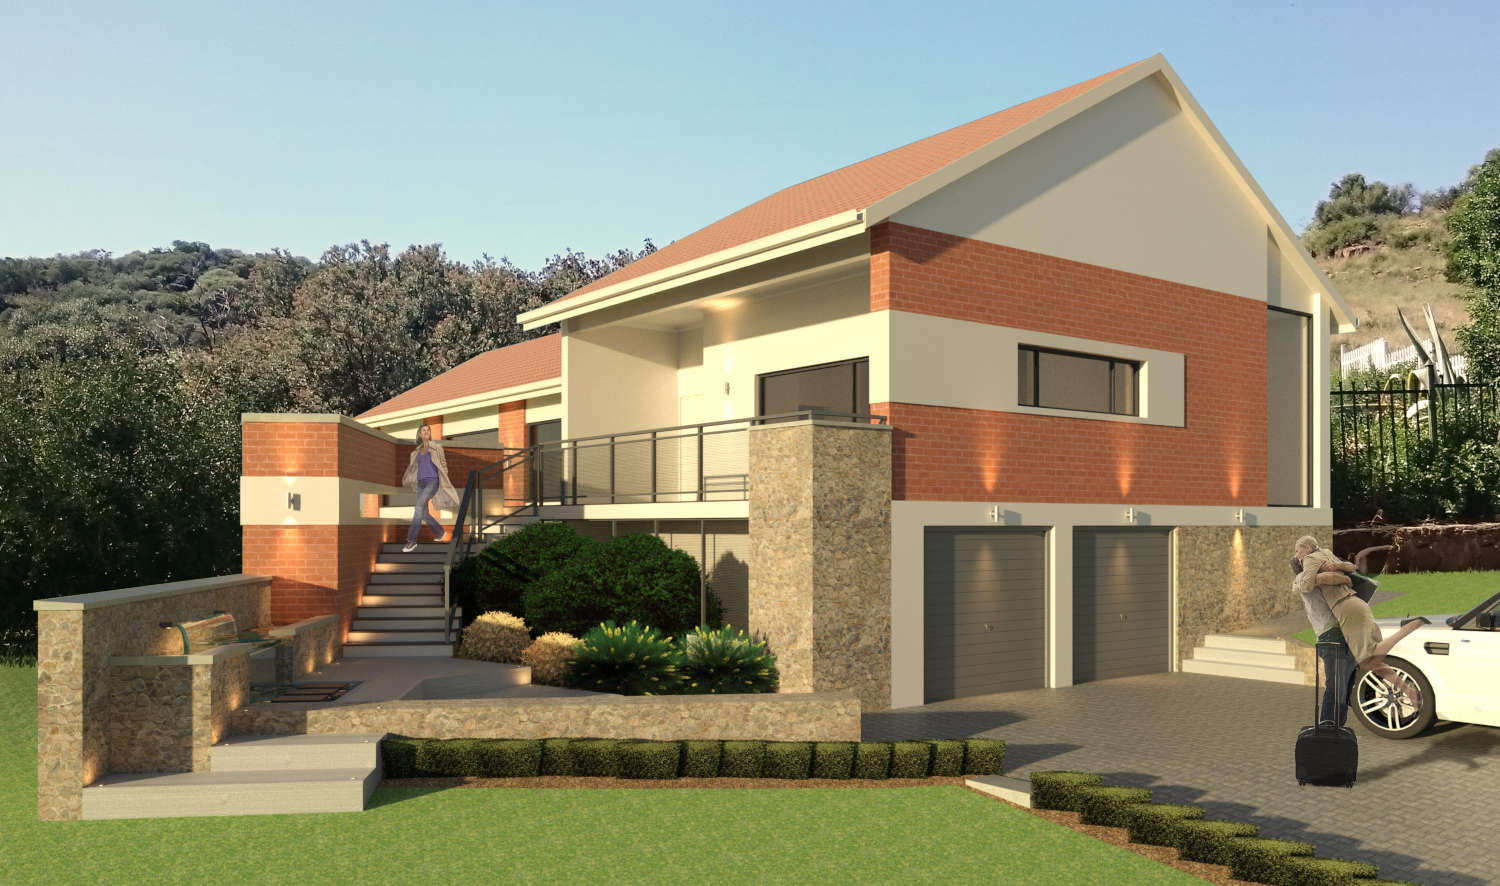 House Chinner - Addition and Alteration to an existing house on Grant's hill, Dan Pienaar, Bloemfontein